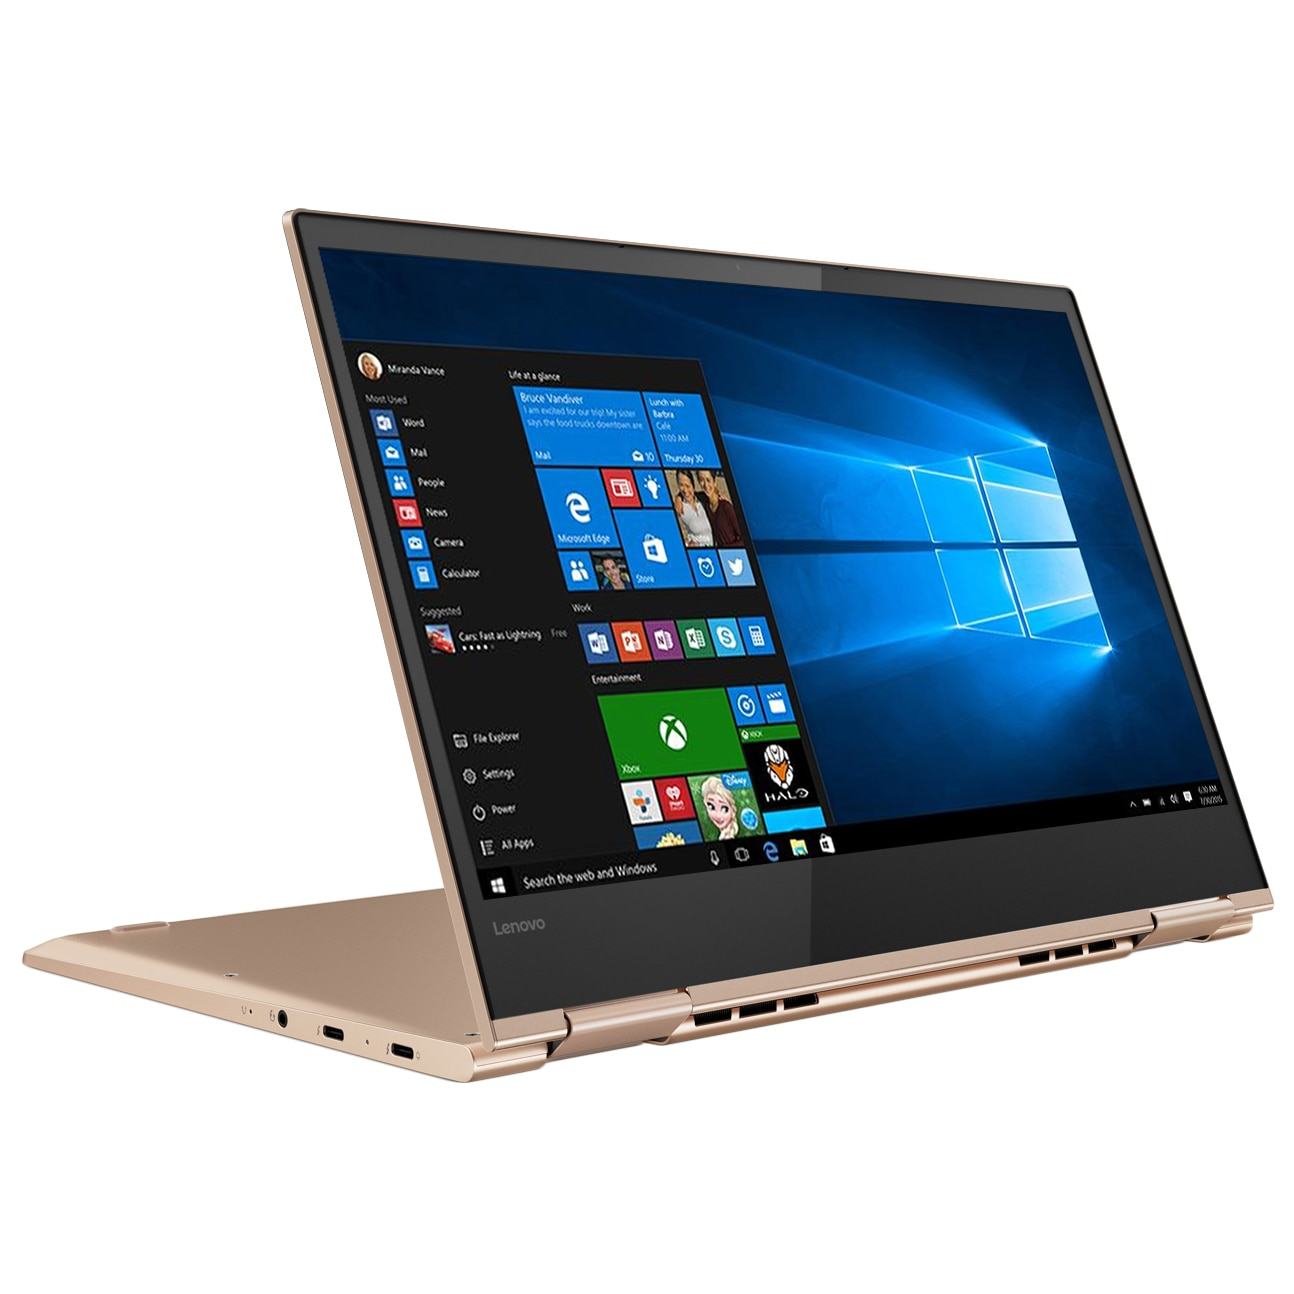 "Fotografie Laptop 2 in 1 Lenovo YOGA 730-13IKB cu procesor Intel® Core™ i7-8550U pana la 4.00 GHz, Kaby Lake R, 13.3"", Full HD, IPS, Touch, 8GB, 256GB SSD, Intel® UHD Graphics 620, Microsoft Windows 10, Copper, Bluetooth Active Pen"